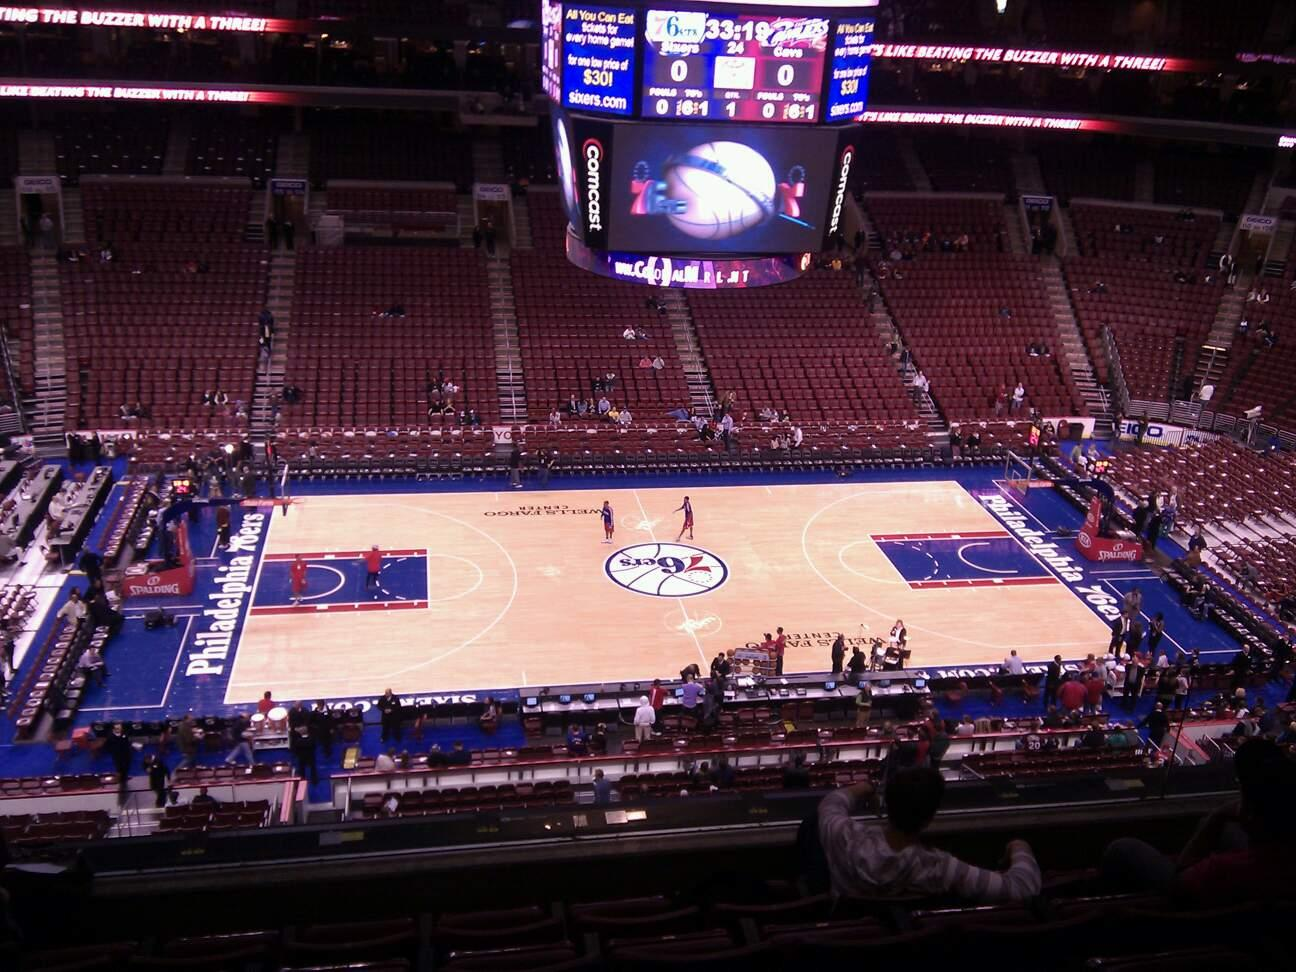 Wells Fargo Center Section 224 Row 6 Seat 9